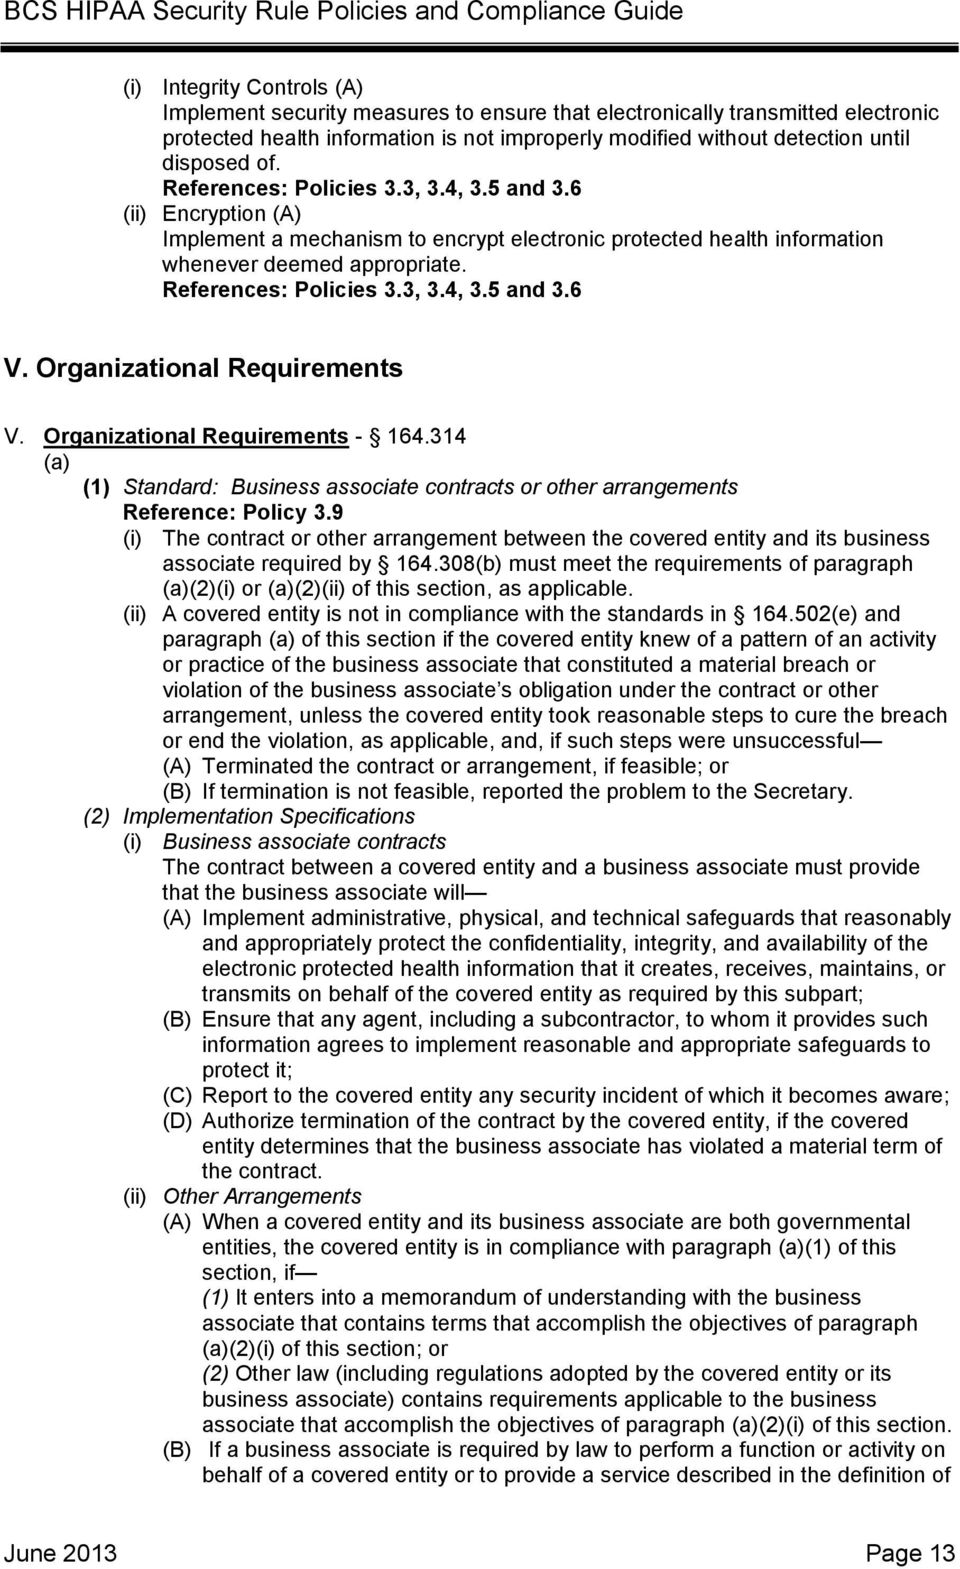 Organizational Requirements V. Organizational Requirements - 164.314 (a) (1) Standard: Business associate contracts or other arrangements Reference: Policy 3.